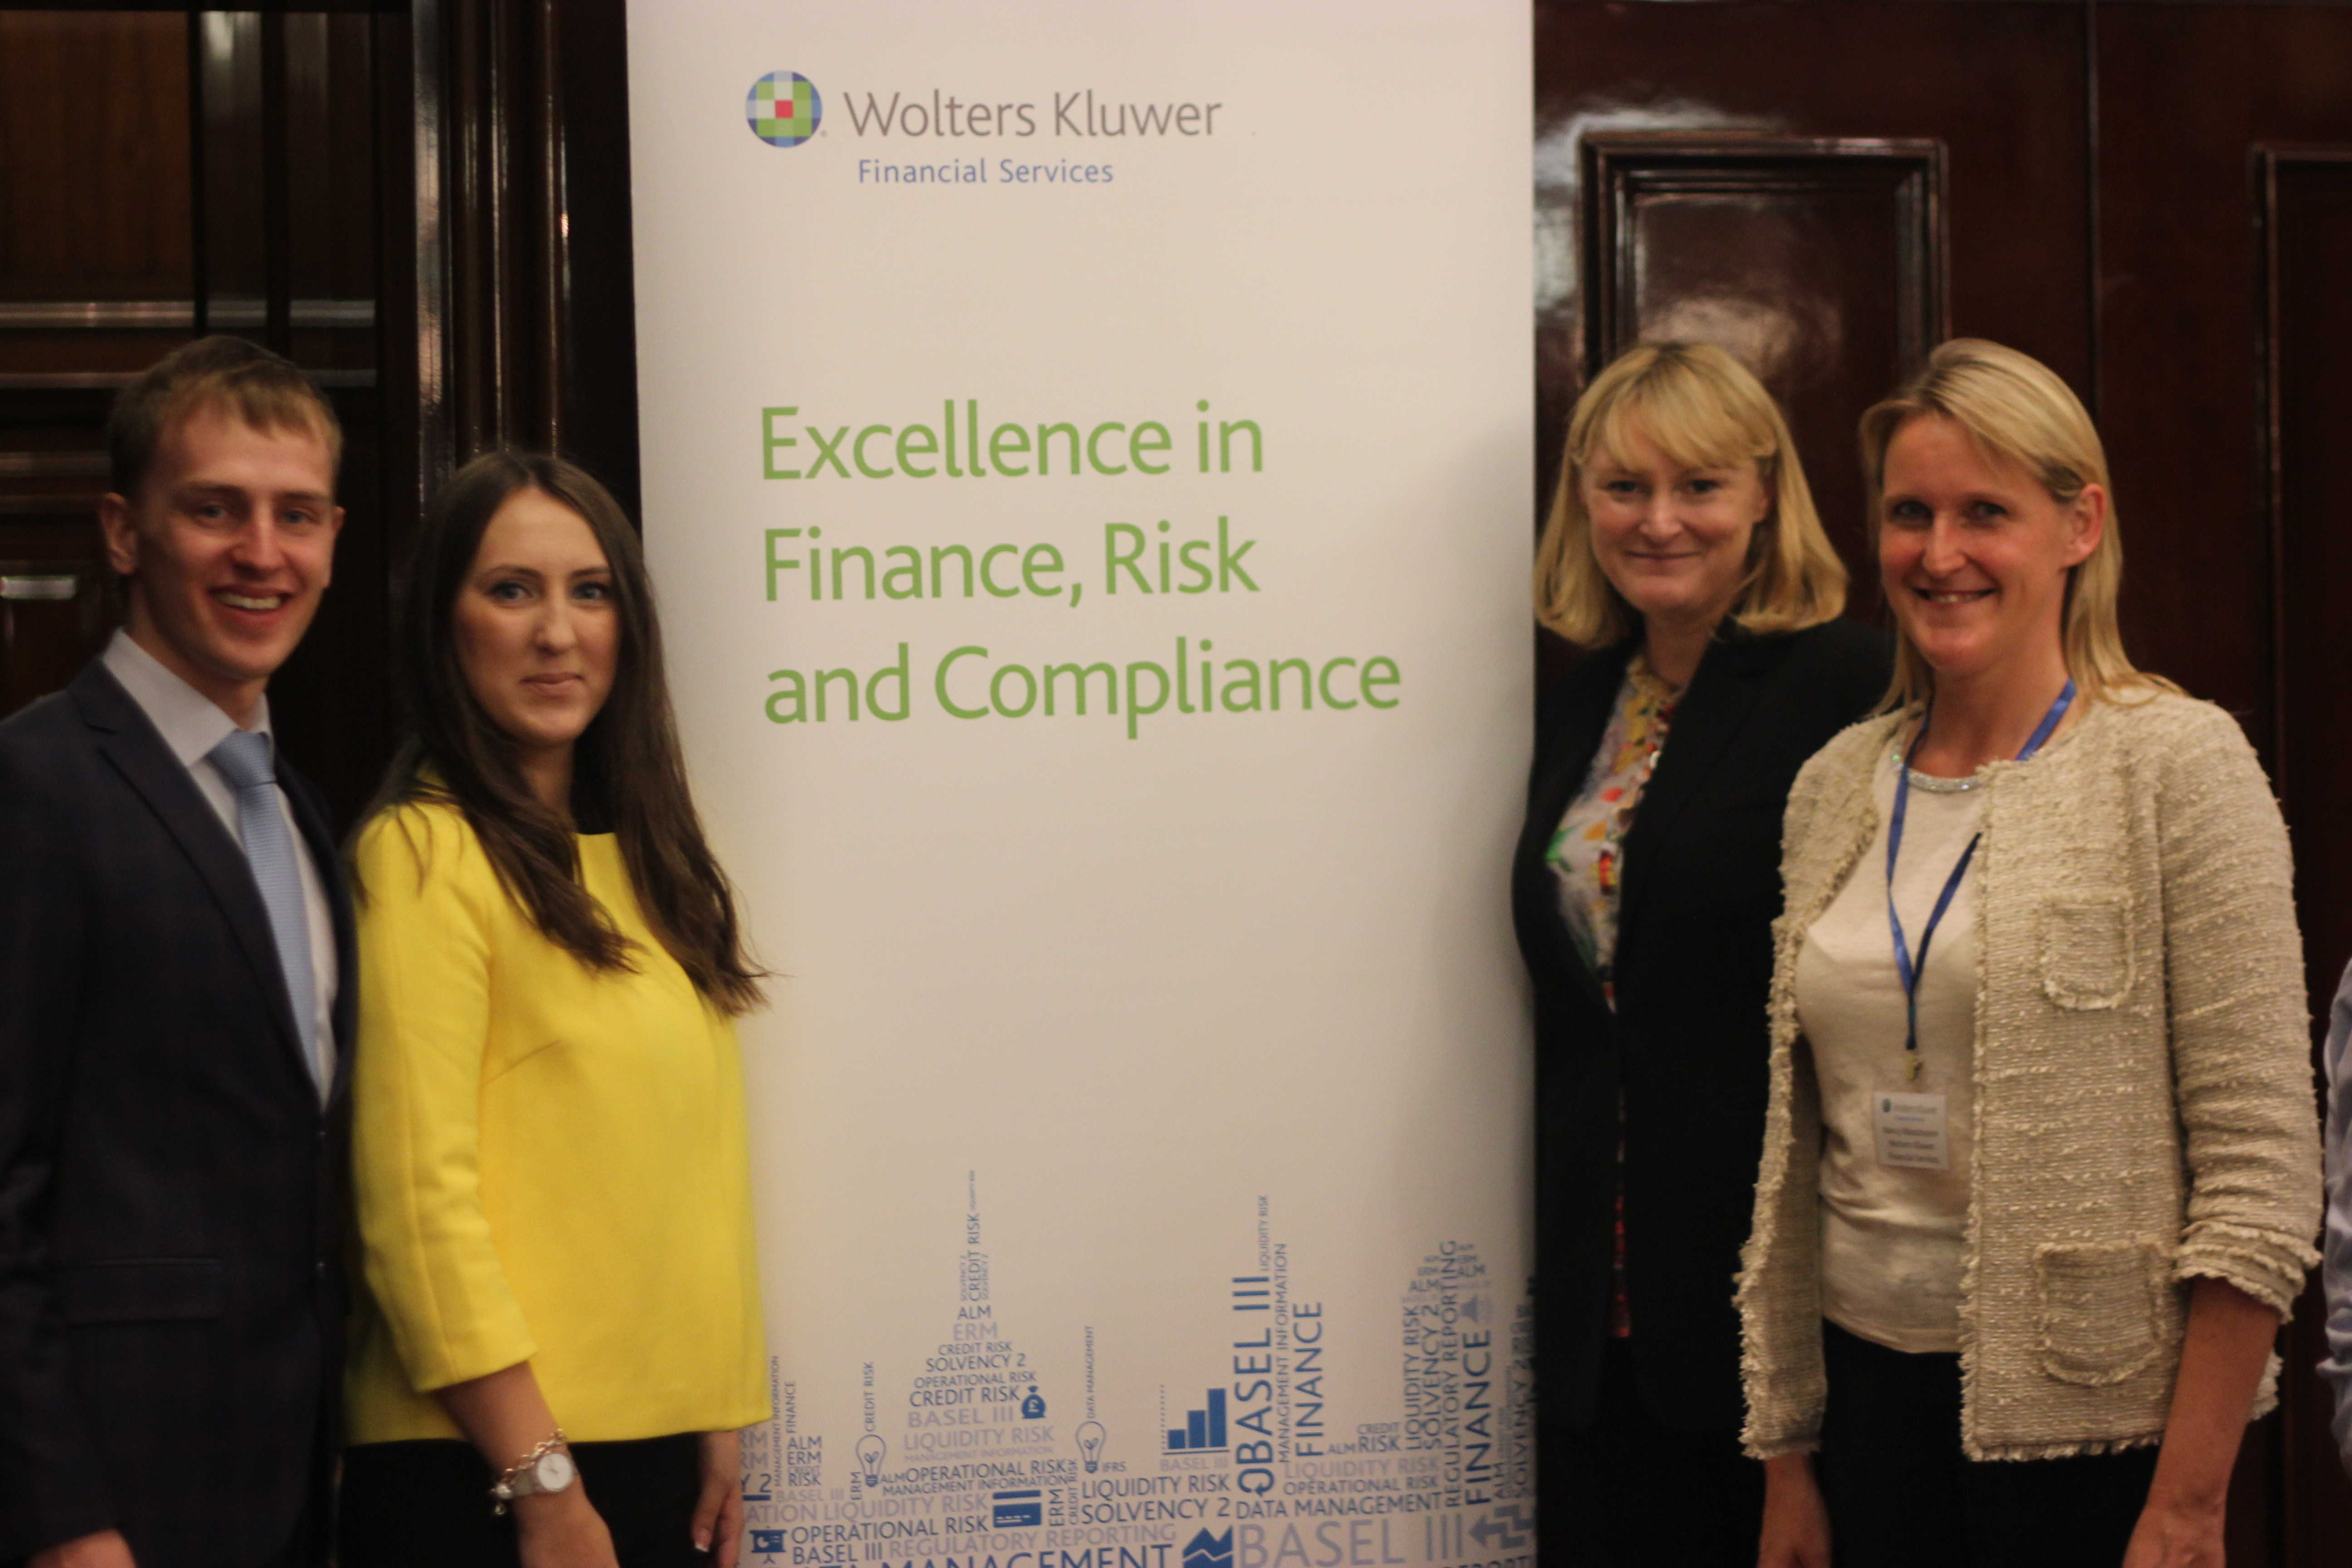 RMAA Group organized Financial Markets Summit for Wolters Kluwer FS, pic. 1